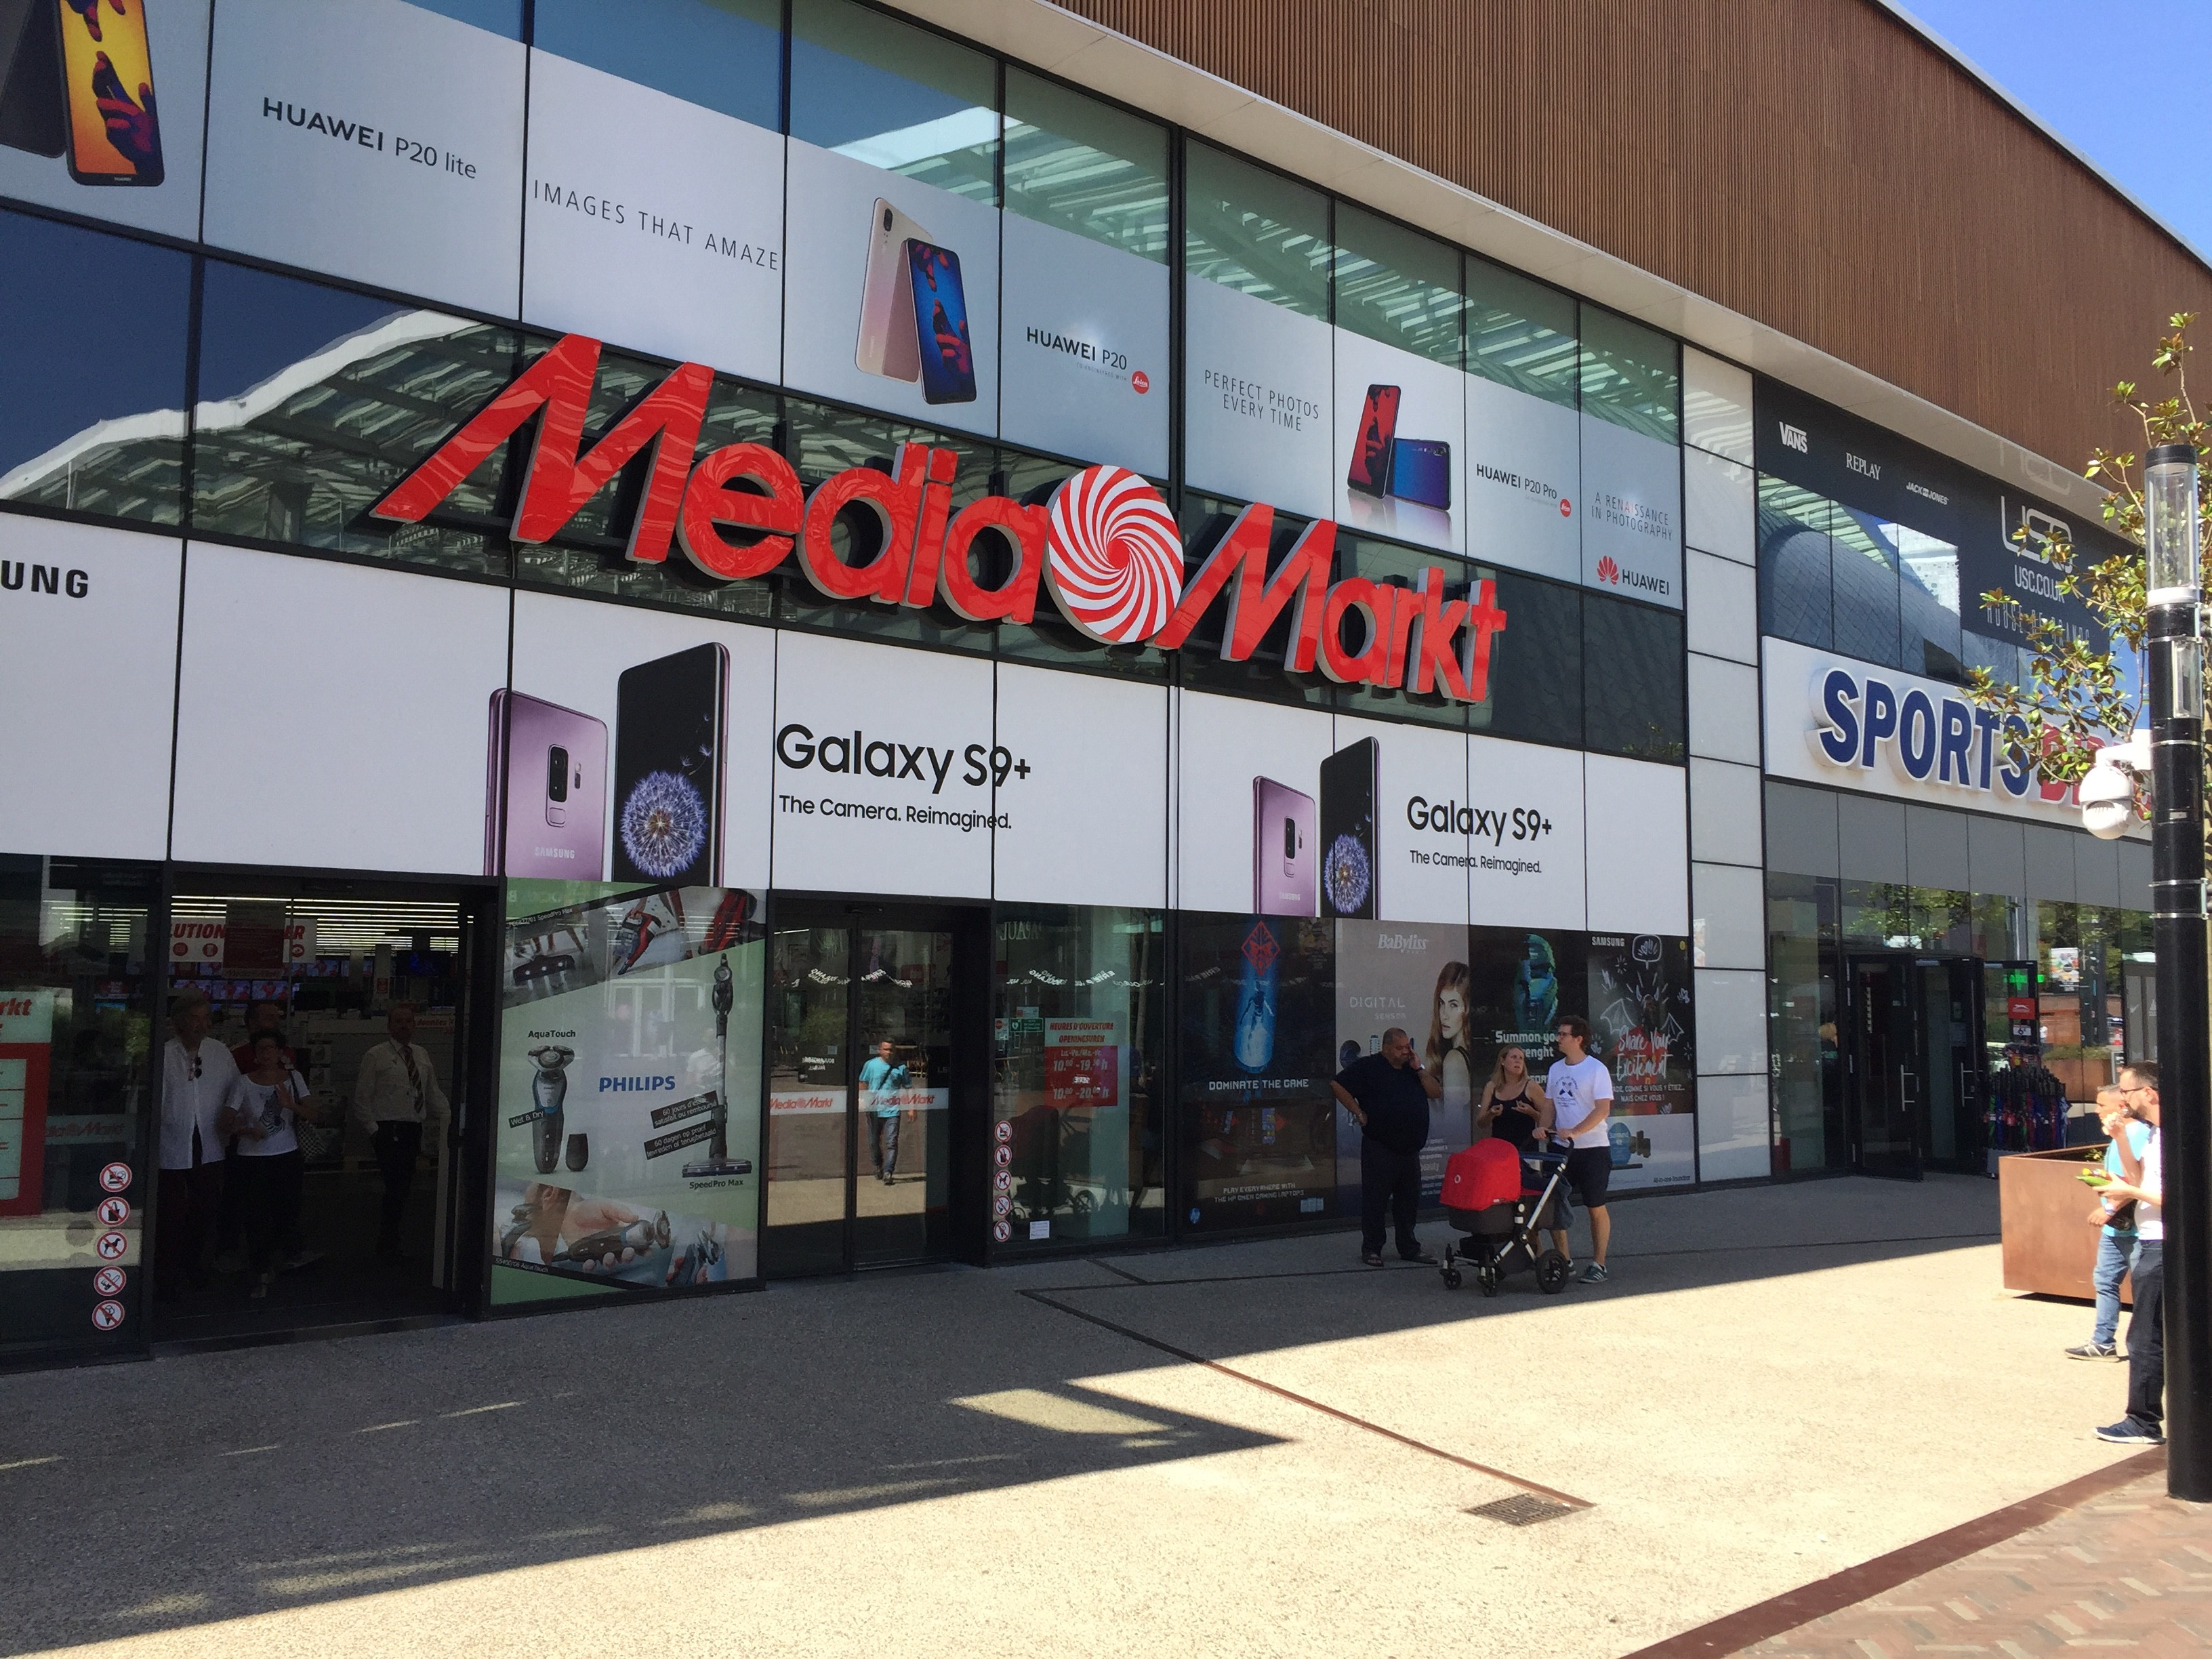 Media Markt at Docks